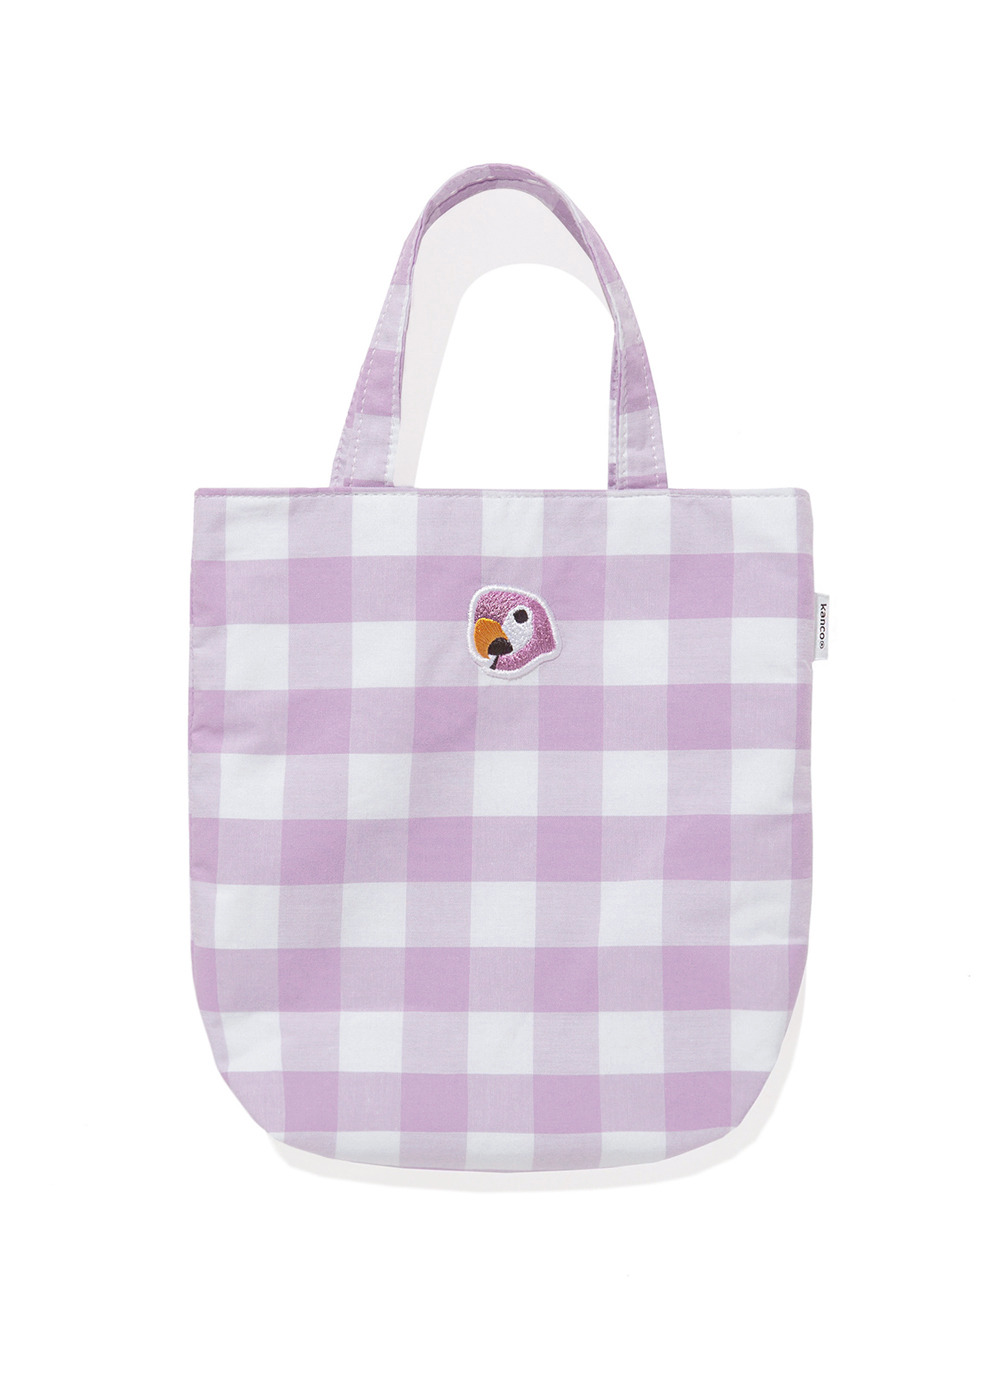 KANCO MINI TOTE BAG lavender